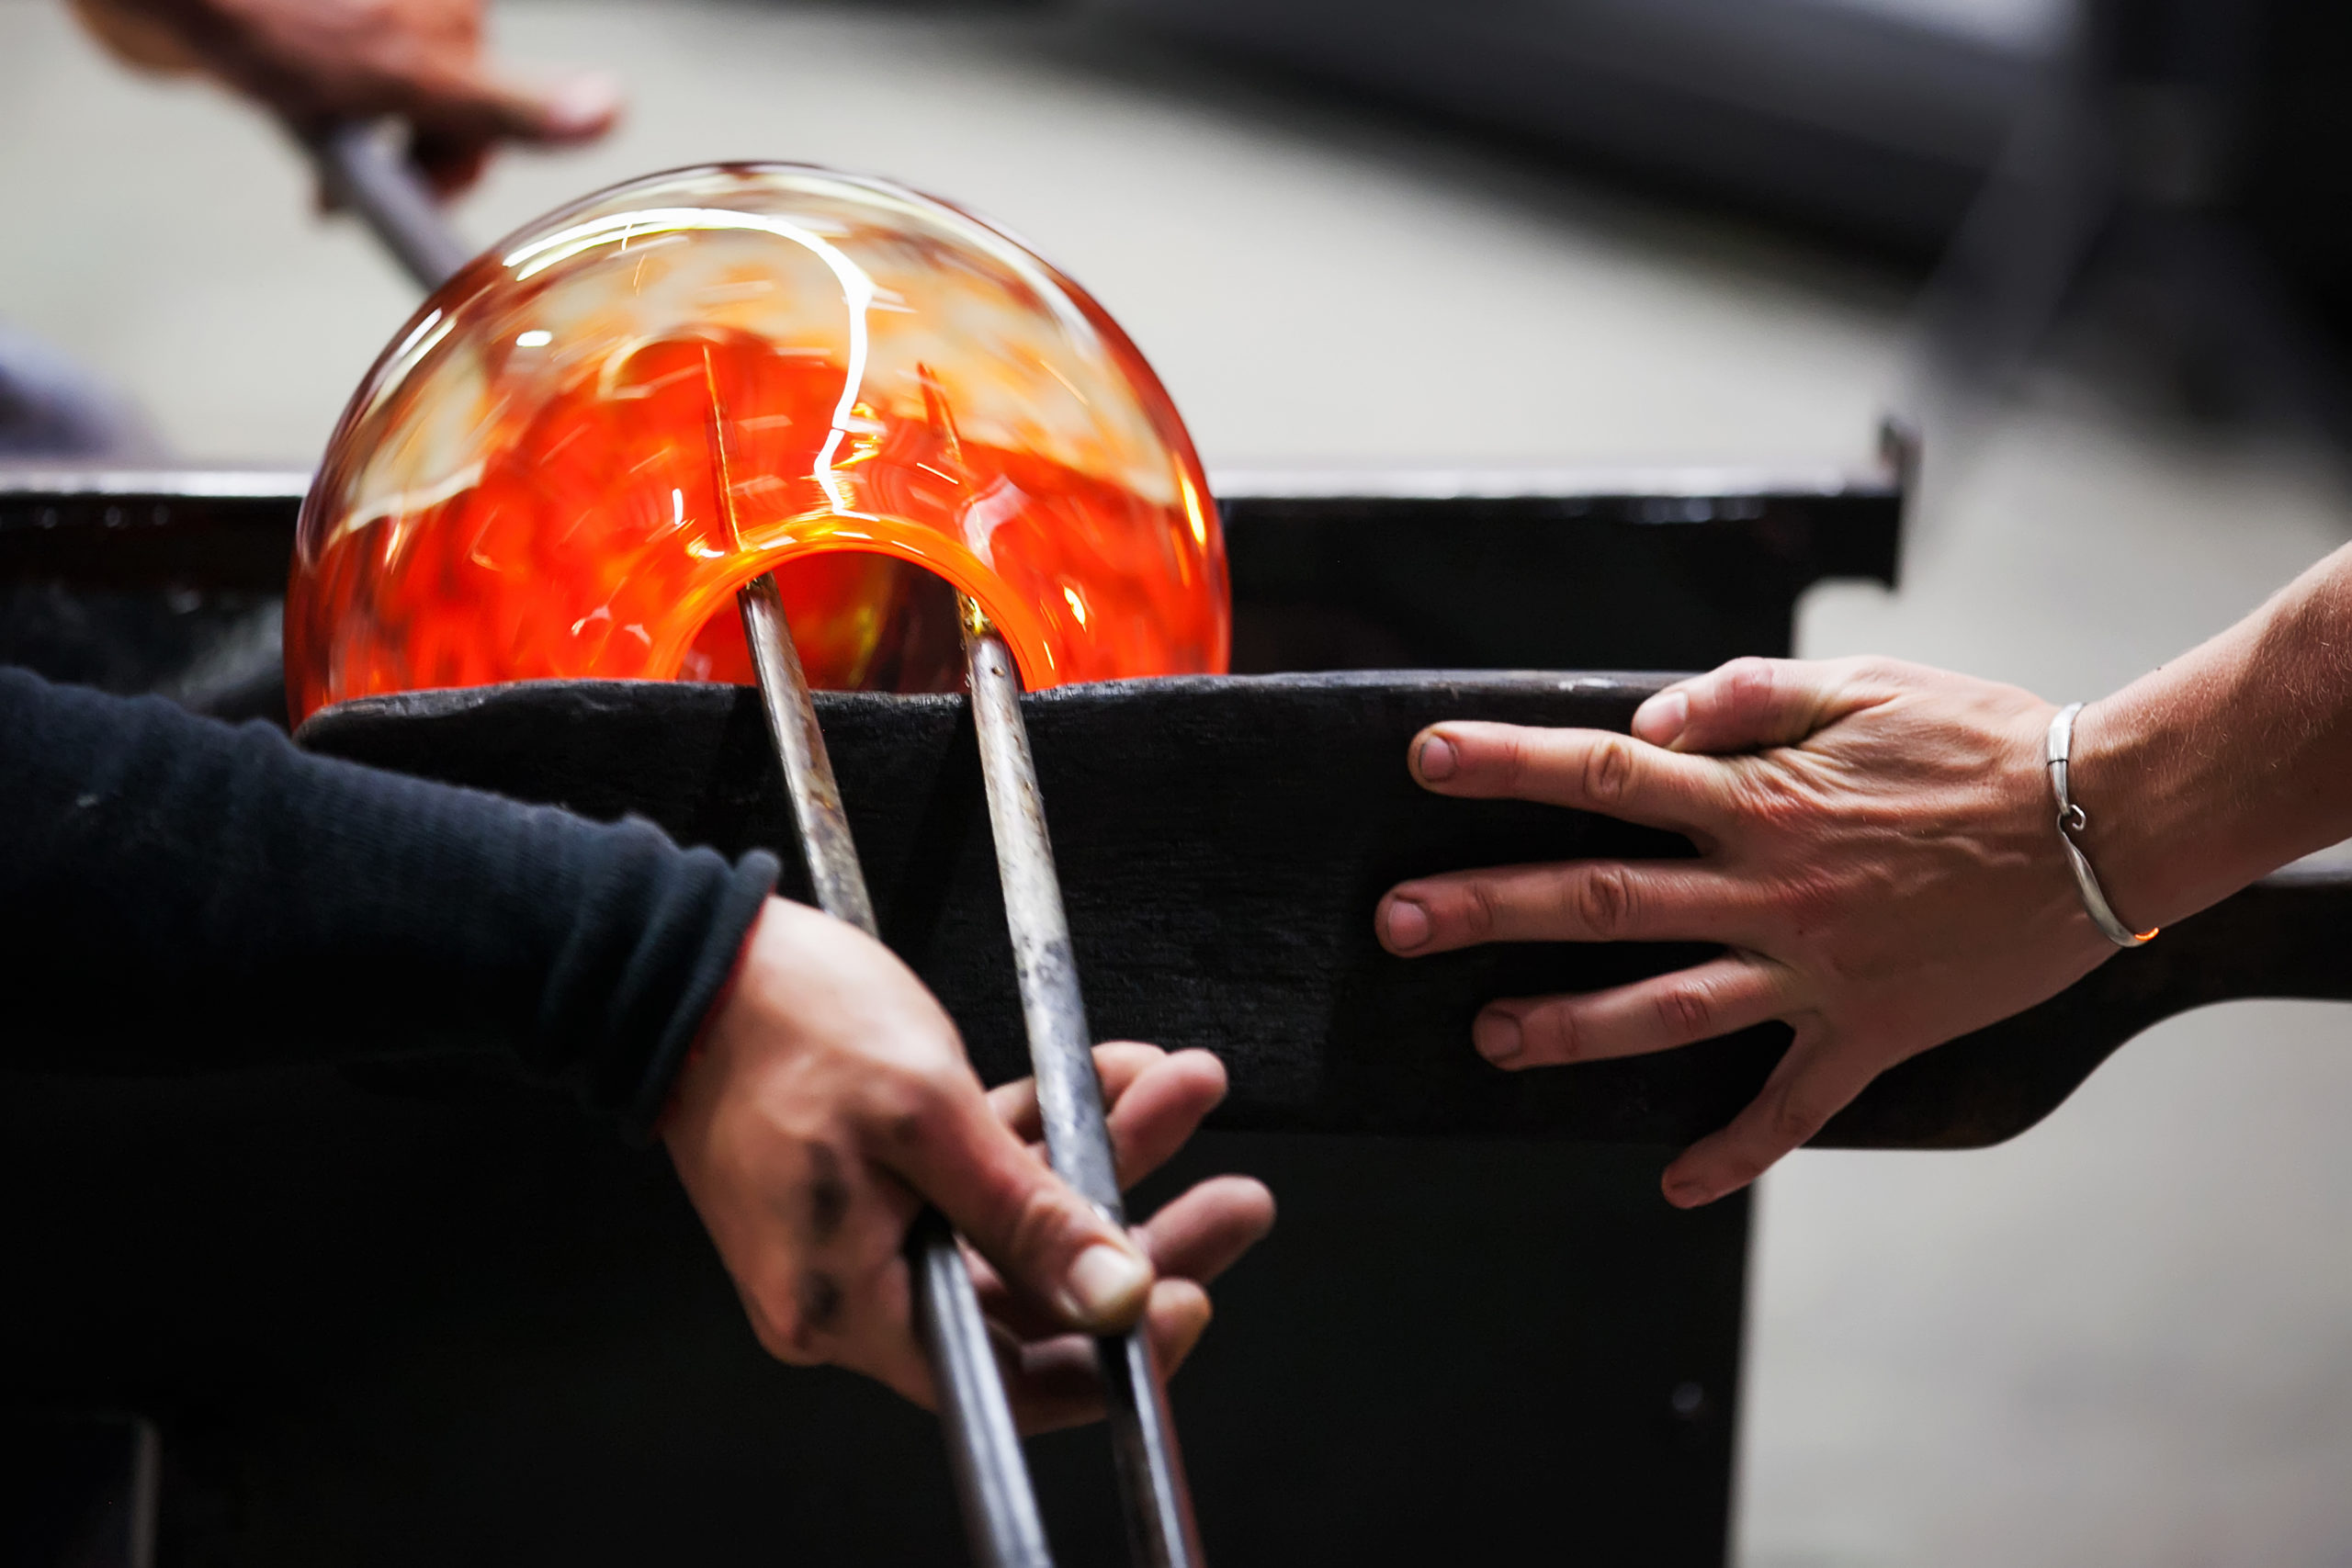 glass blowing in action, history of glass